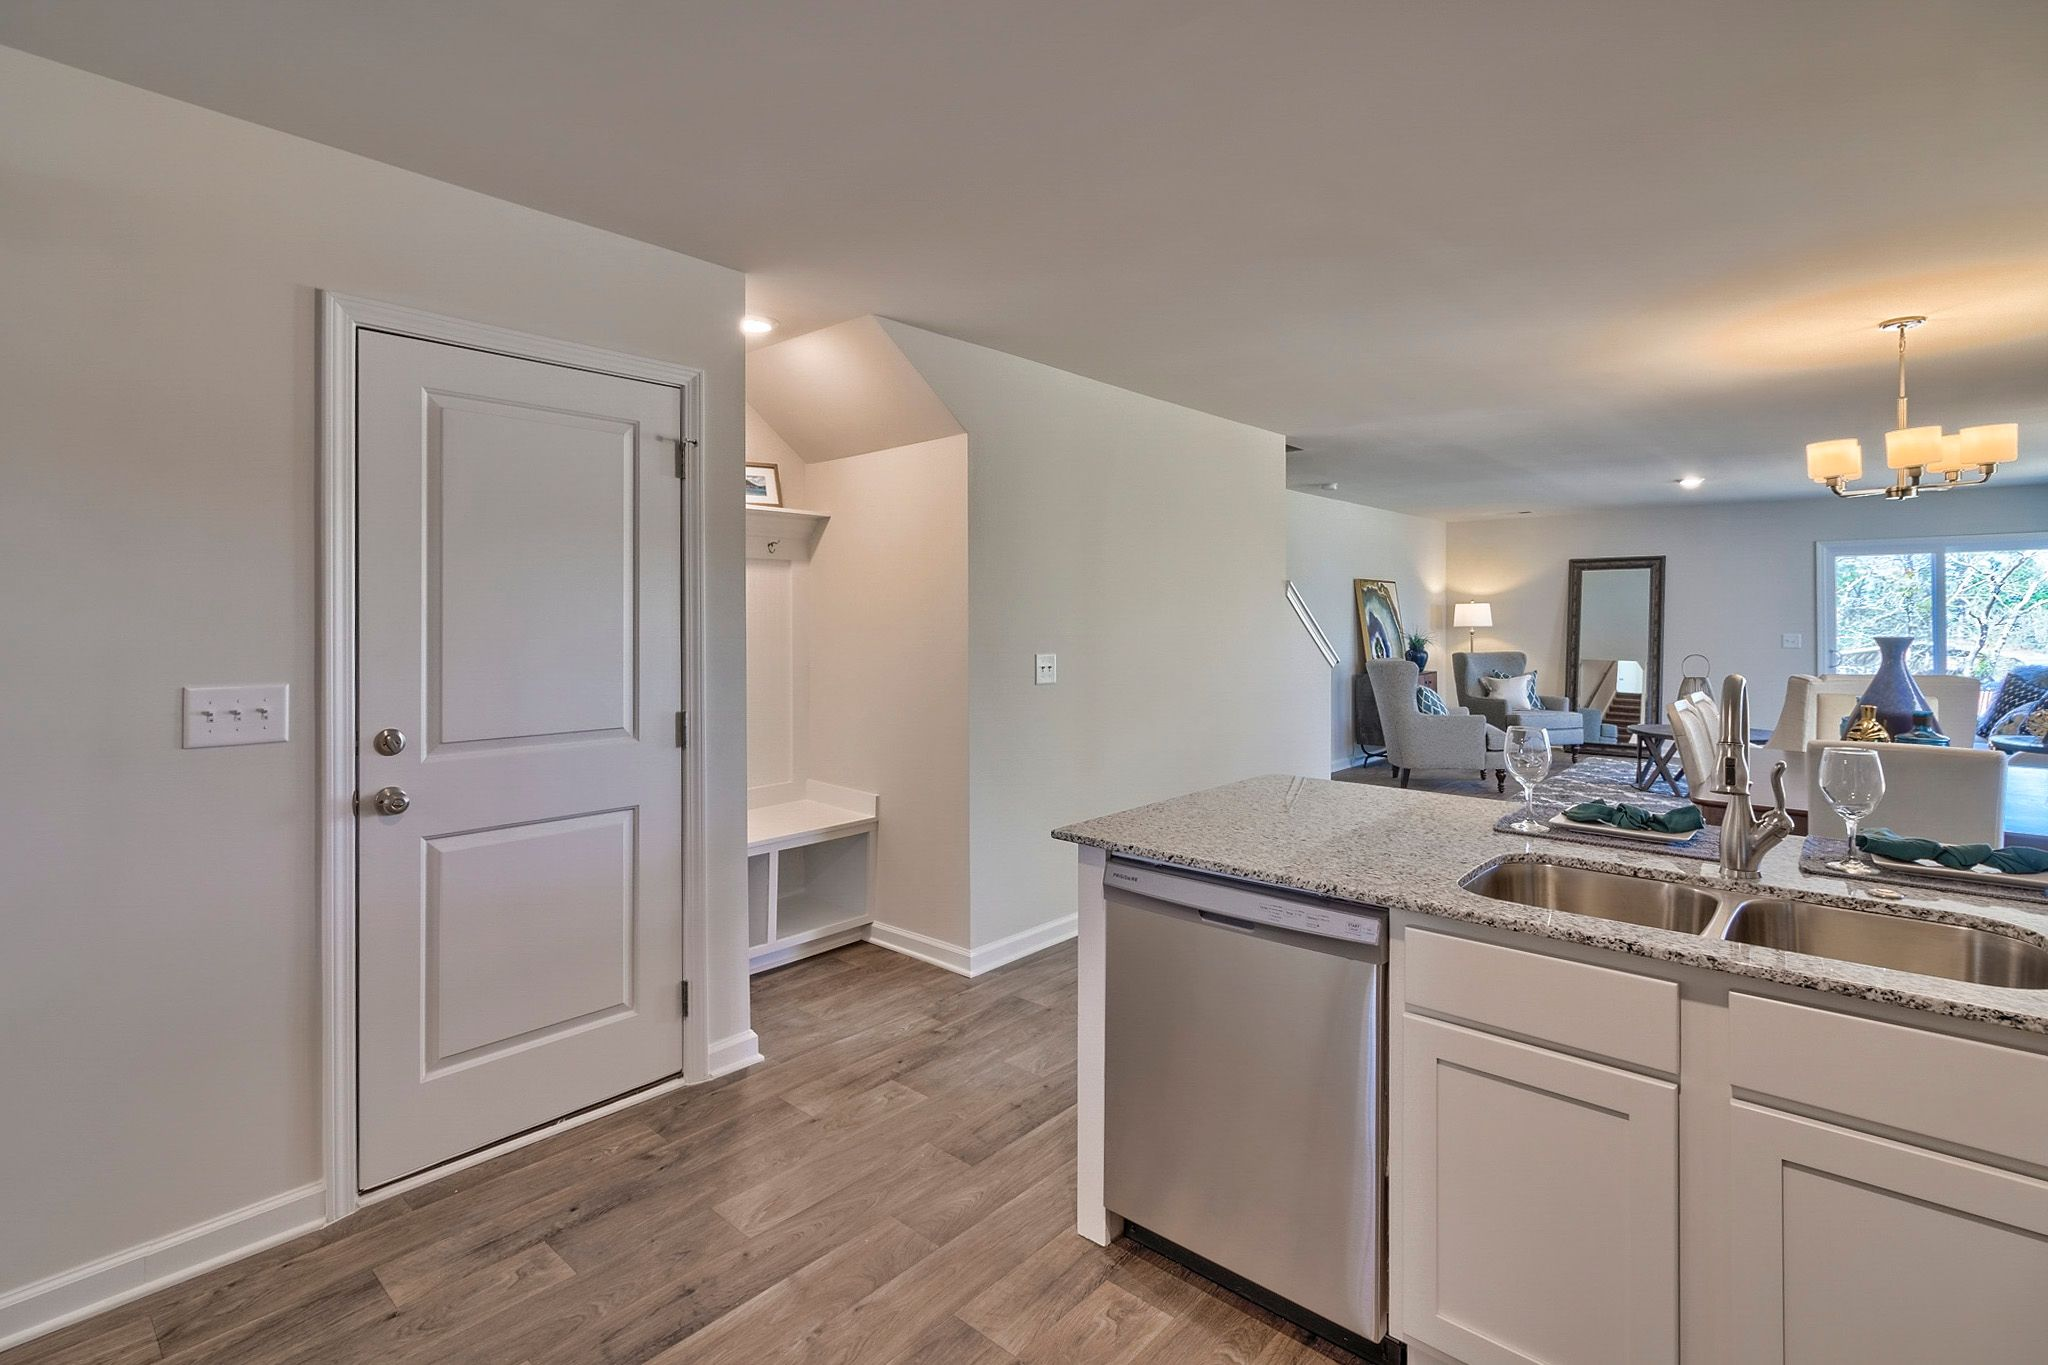 Kitchen featured in the Alder By McGuinn Hybrid Homes in Columbia, SC